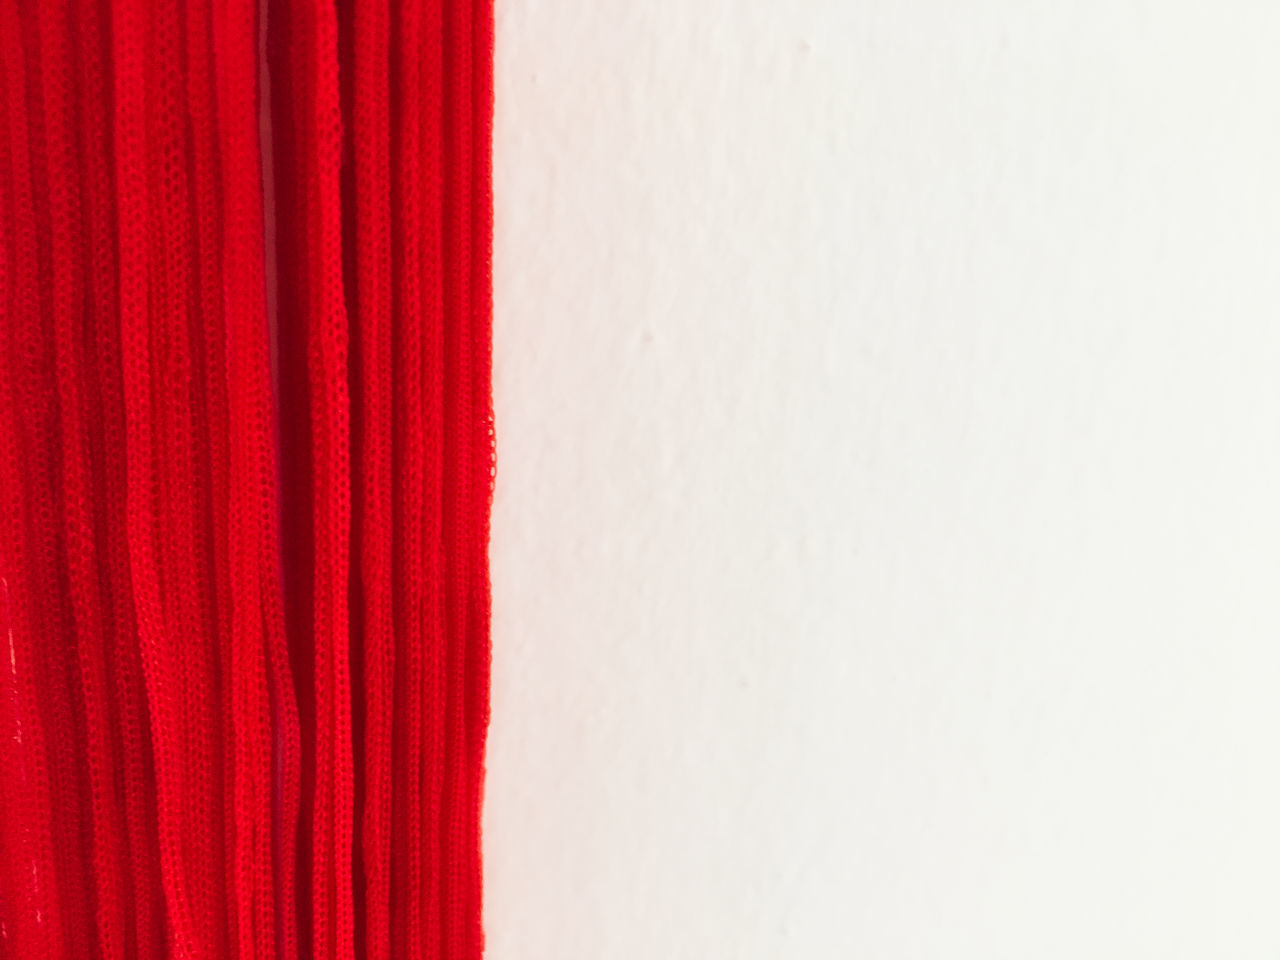 rot weiß Backgrounds Close-up Copy Space Day Indoors  No People Red Red-white Studio Shot Textured  White Background Maximum Closeness